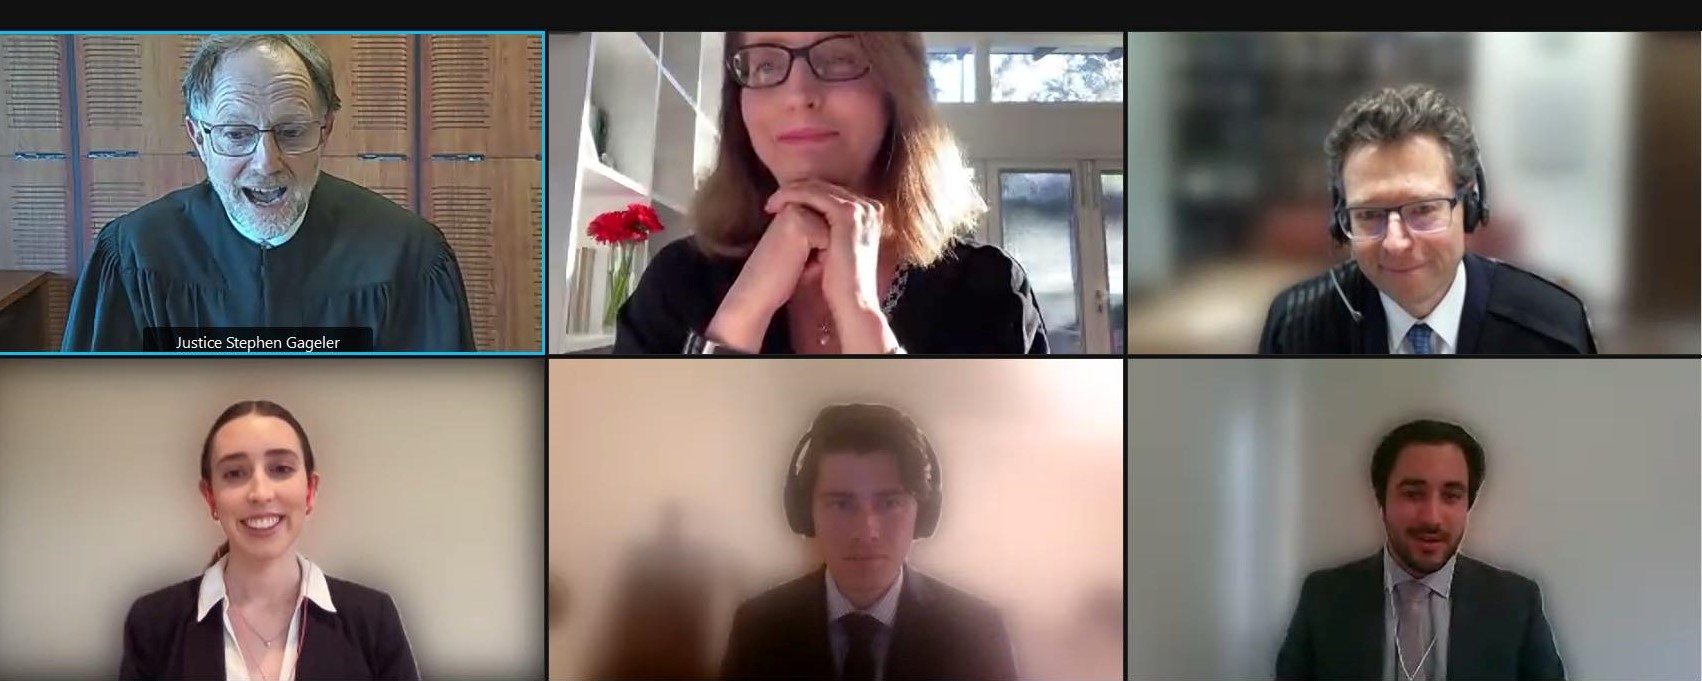 The three ANU participants in the Sir Harry Gibbs Constitutional Law Moot appear in a Zoom gallery view with the three judges.